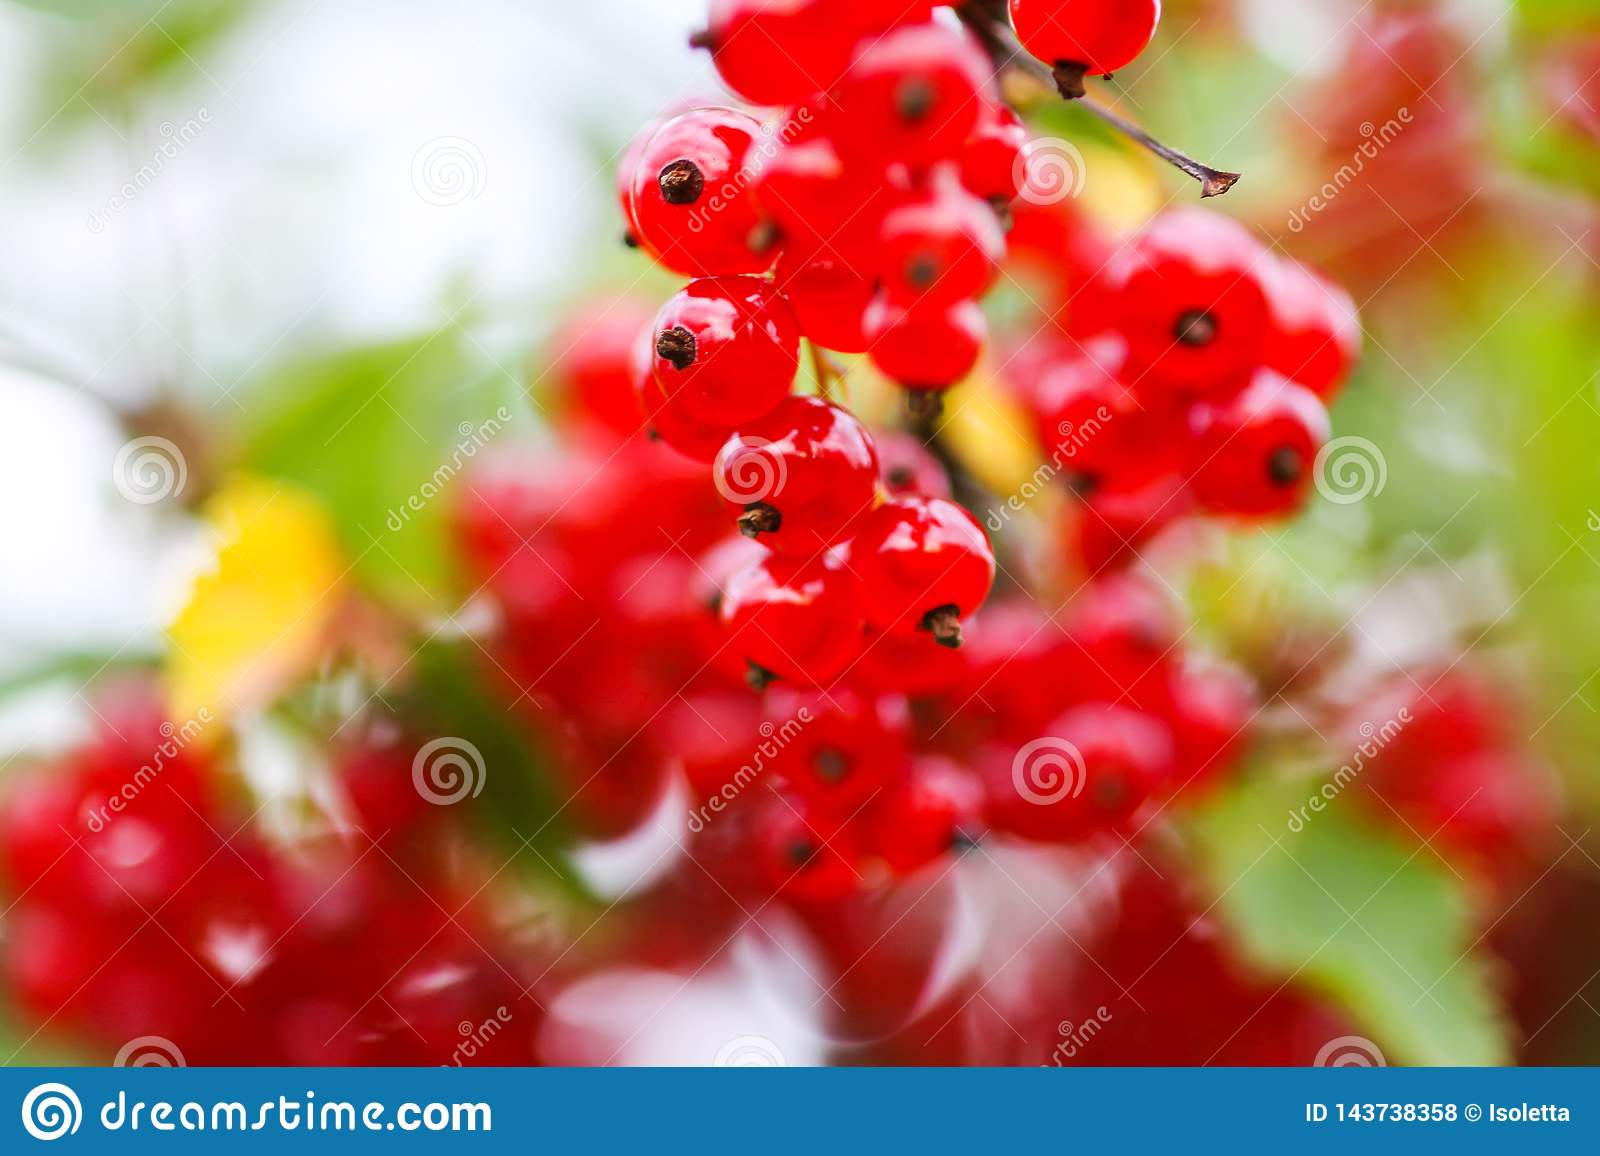 Ripe red currant in a summer garden. Ribes rubrum plant with ripe berries